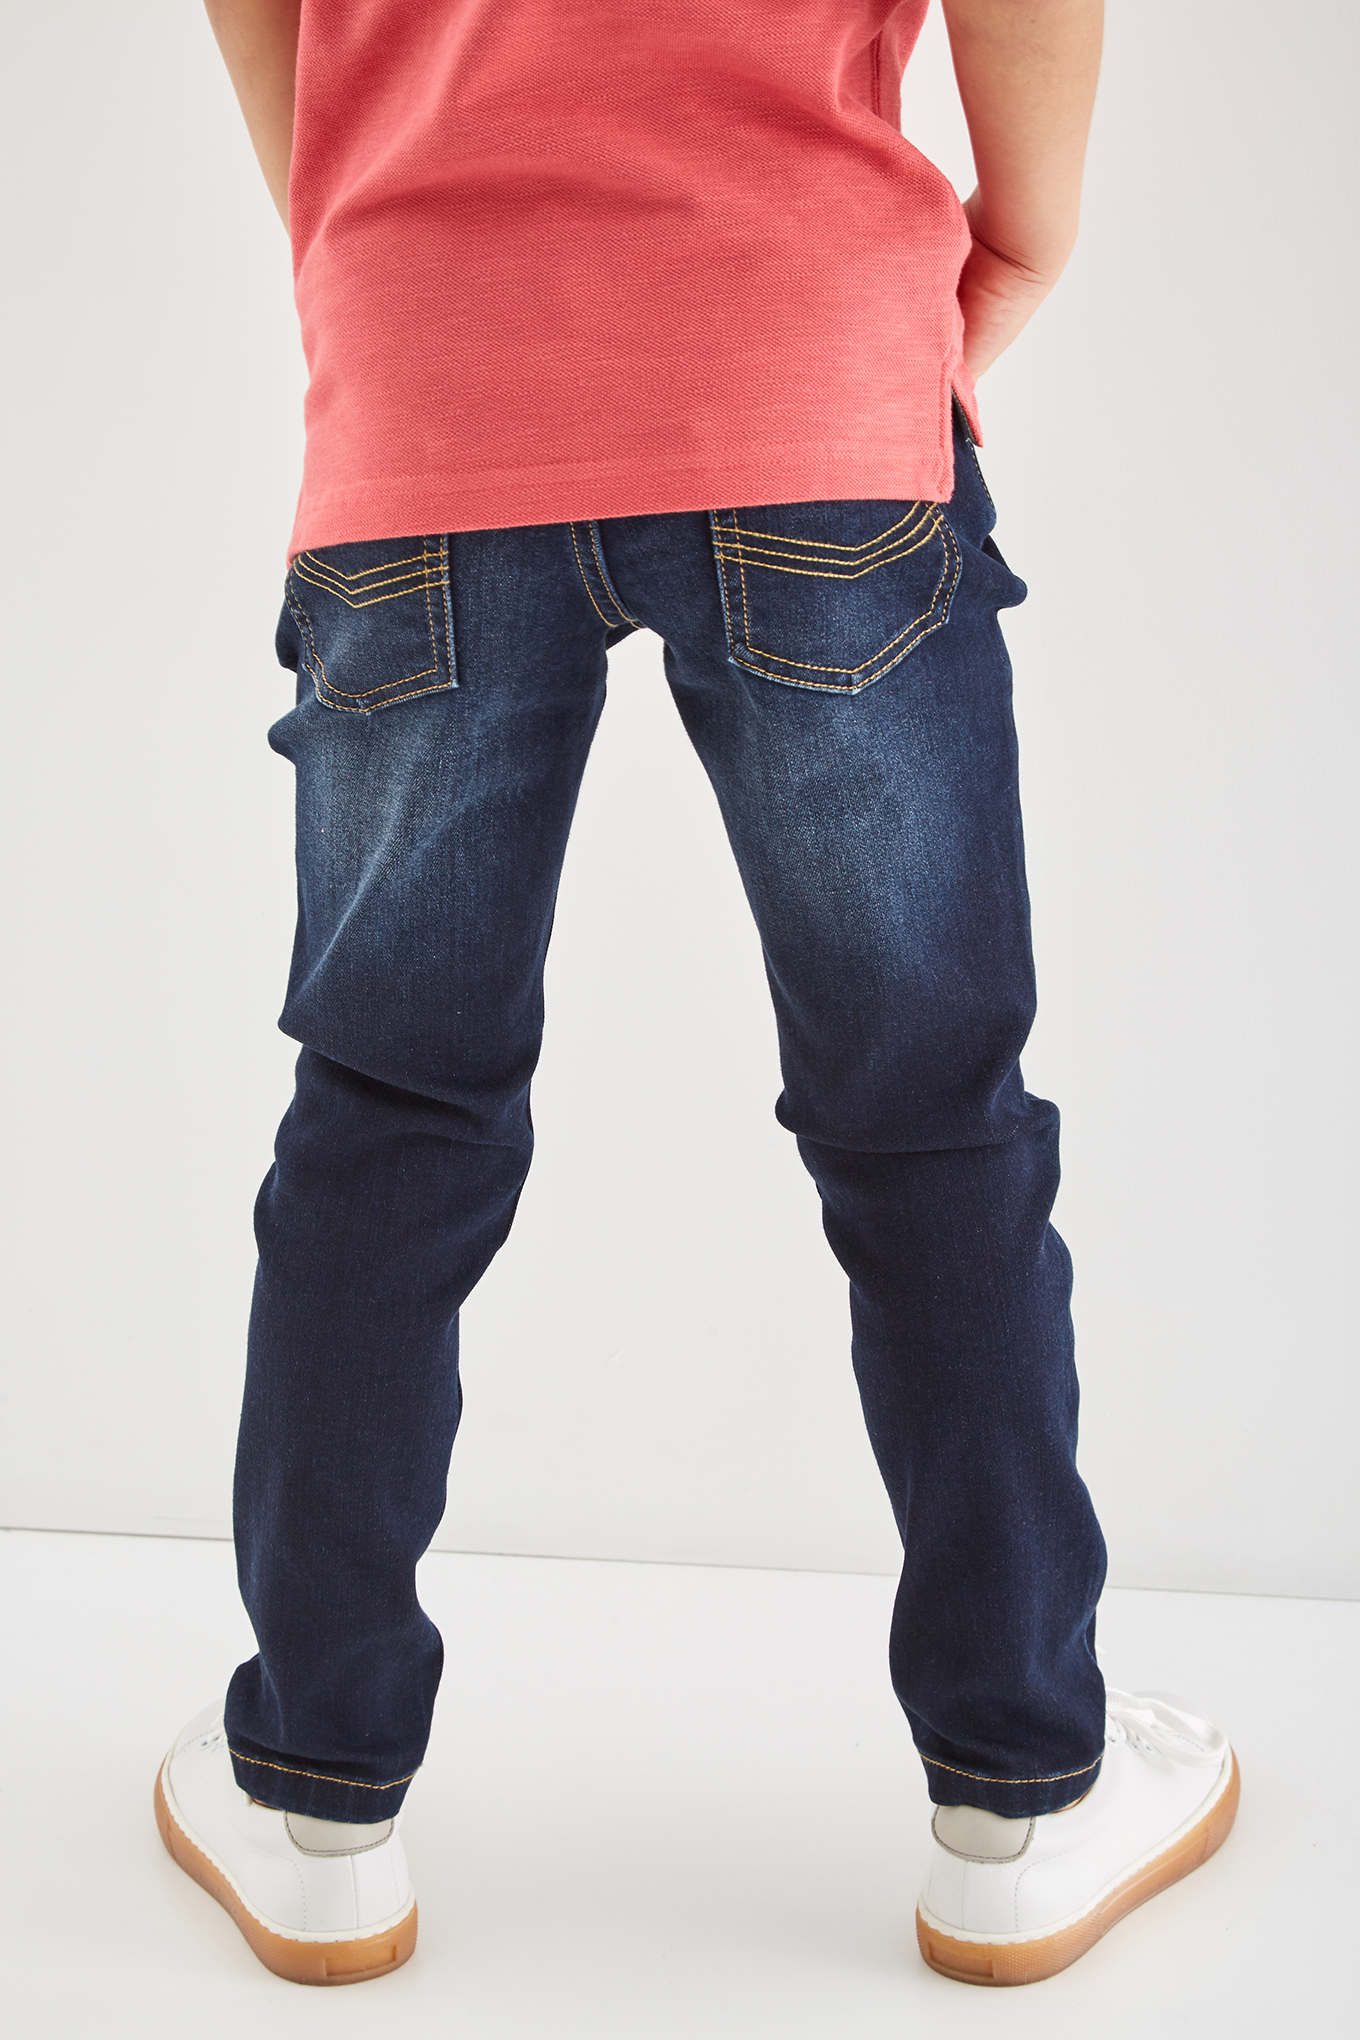 Jeans Dark Blue Sport Boy